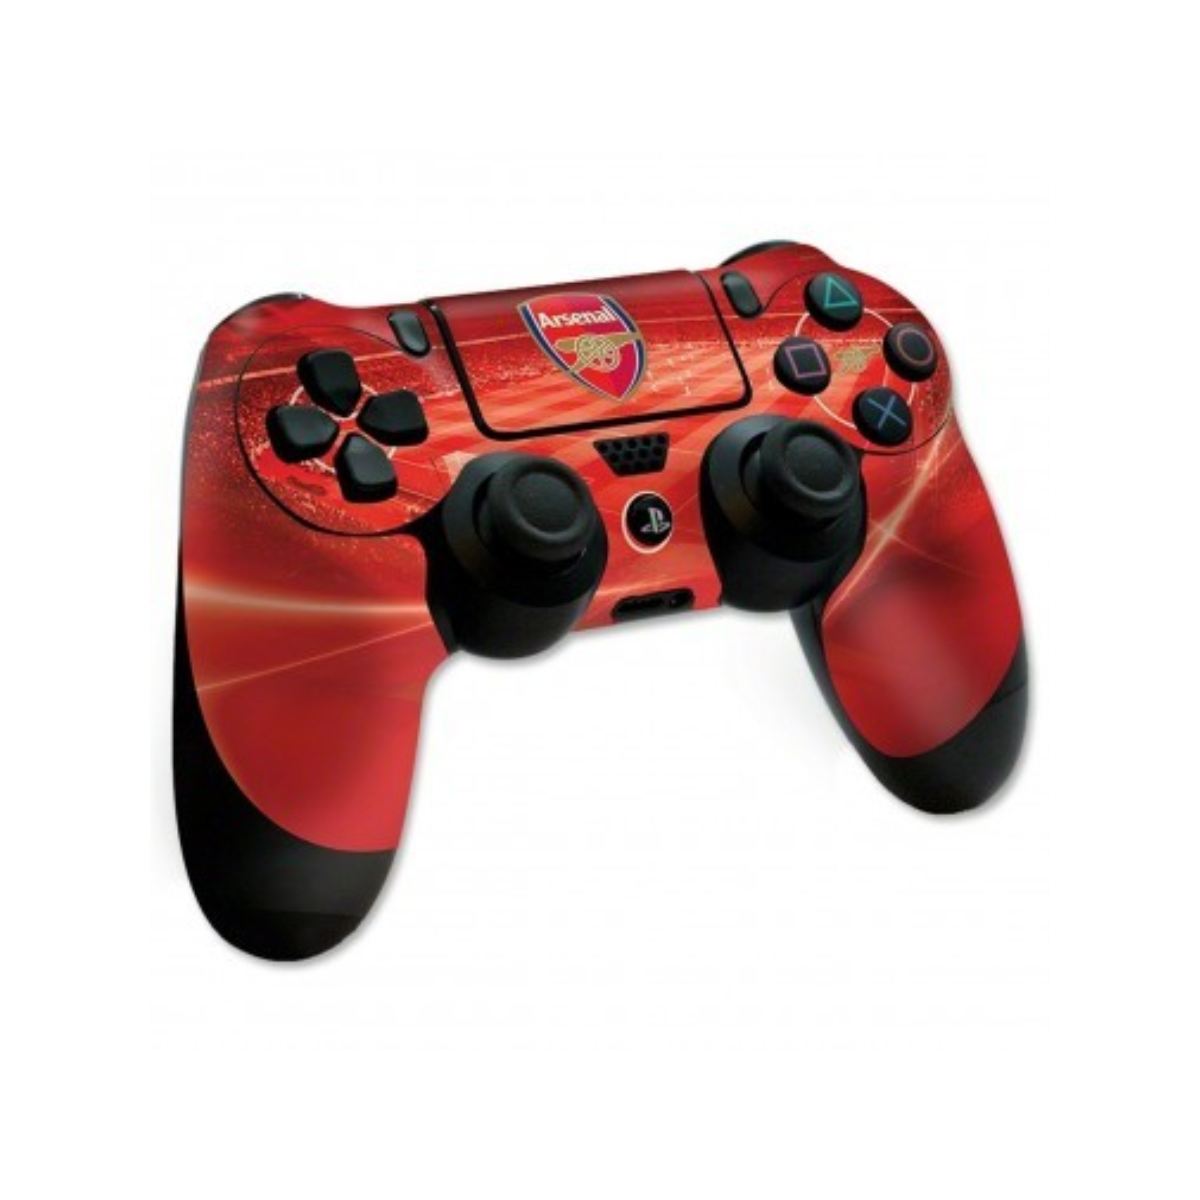 inToro Arsenal FC Skin for PlayStation 4 Controller